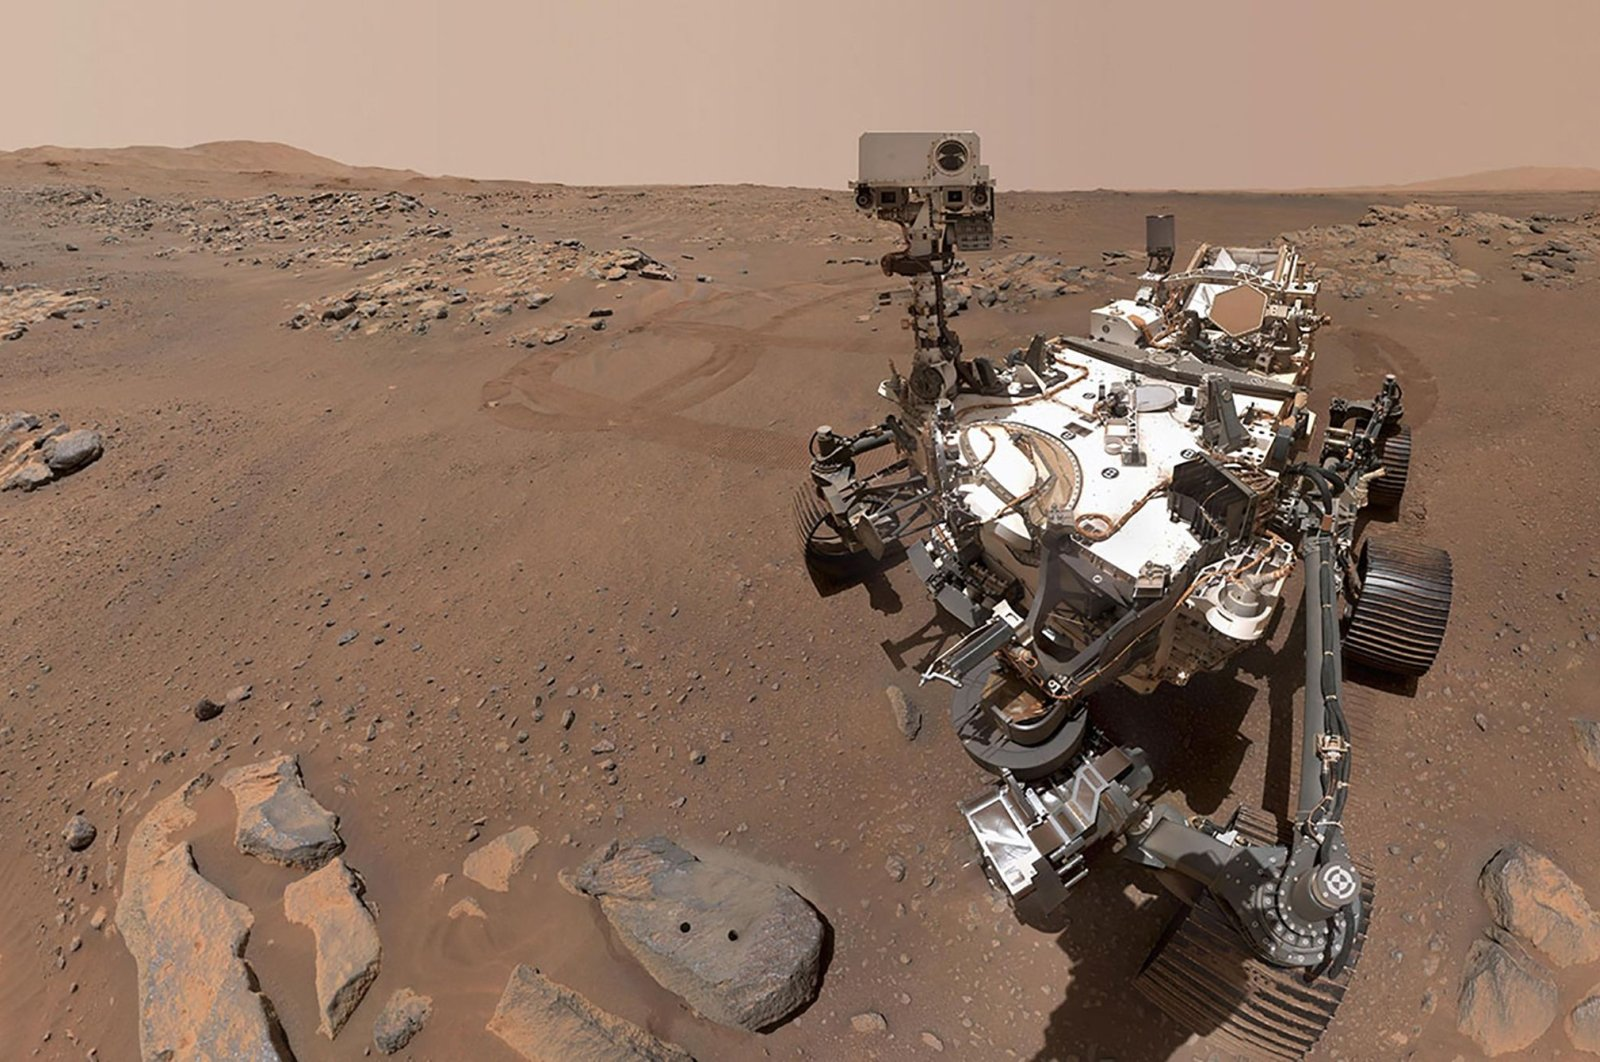 """The Perseverance Mars rover, using its WATSON camera, takes this selfie over a rock nicknamed """"Rochette"""" where two holes can be seen where the rover used its robotic arm to drill rock core samples, Sept. 10, 2021. (NASA via AFP)"""